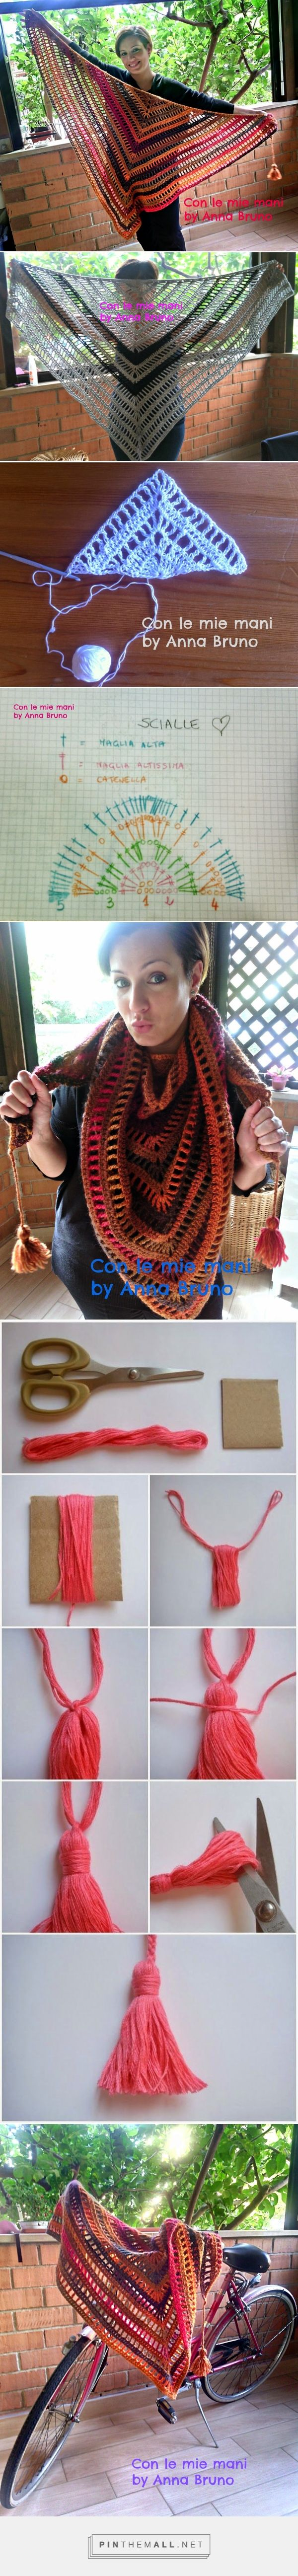 Pin von BellaDii auf Crochet Scarf, Shawl, Poncho Addiction ...